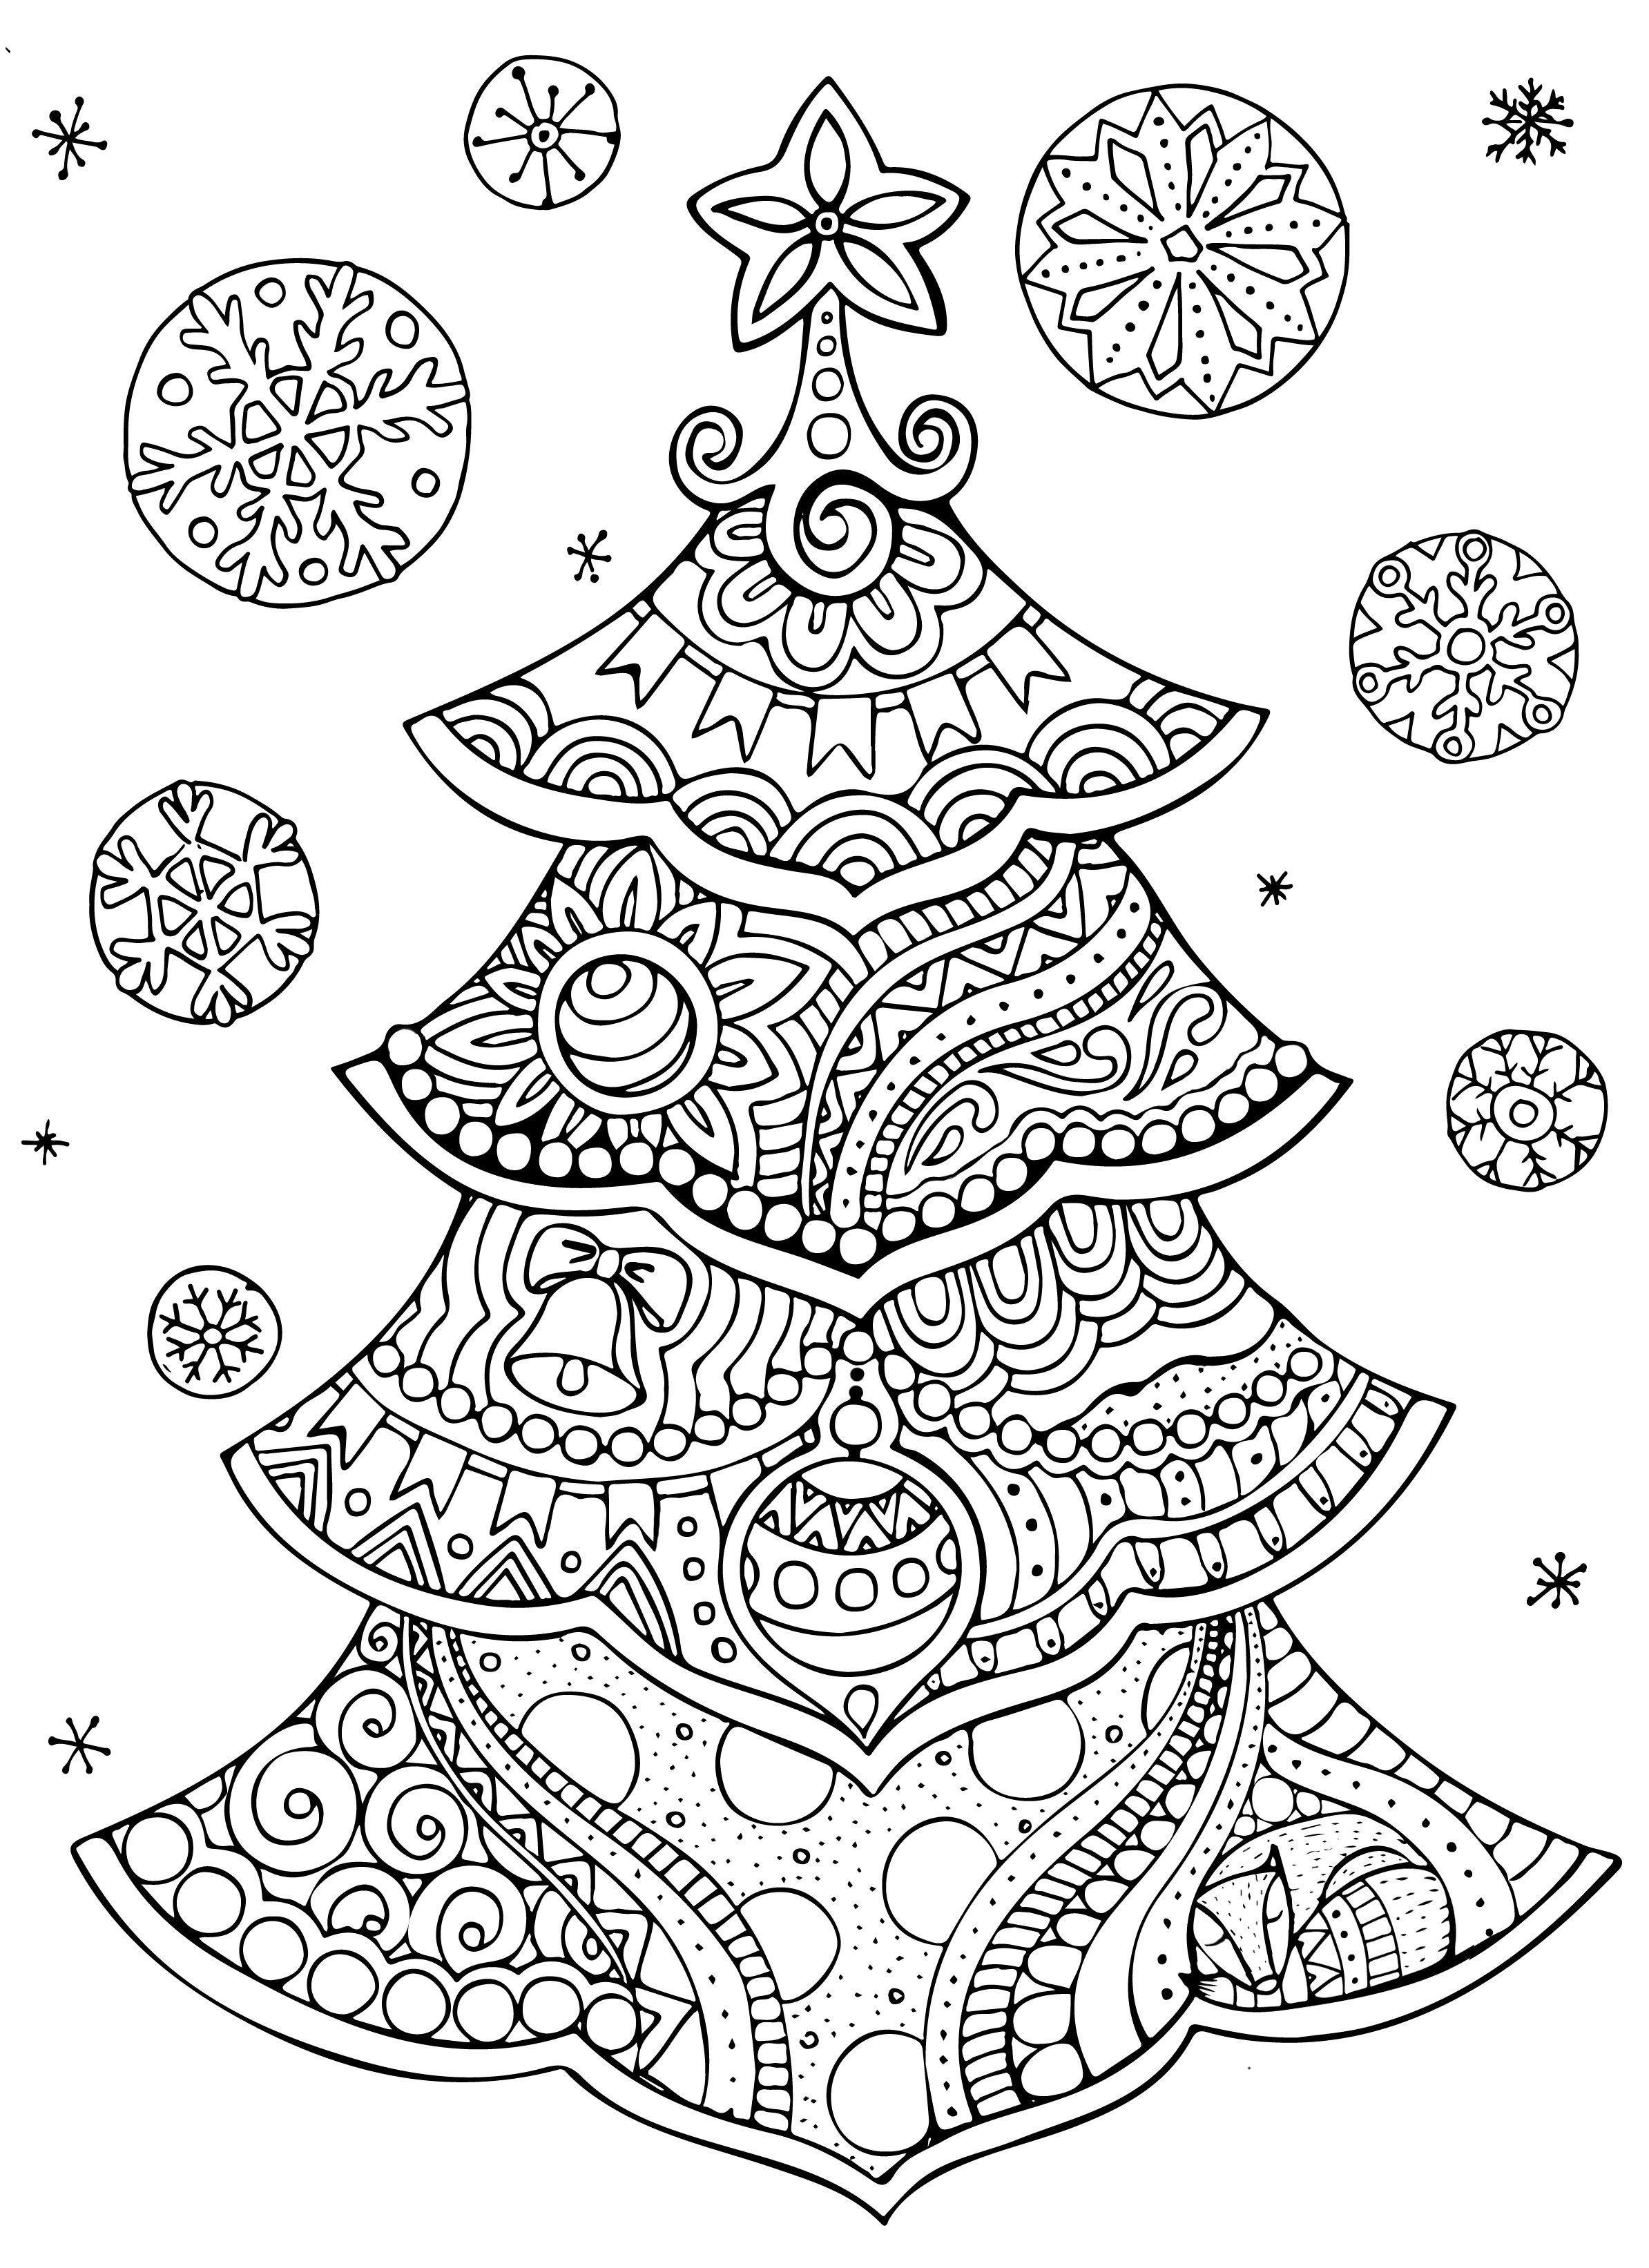 Printable christmas coloring pages, Free christmas coloring pages